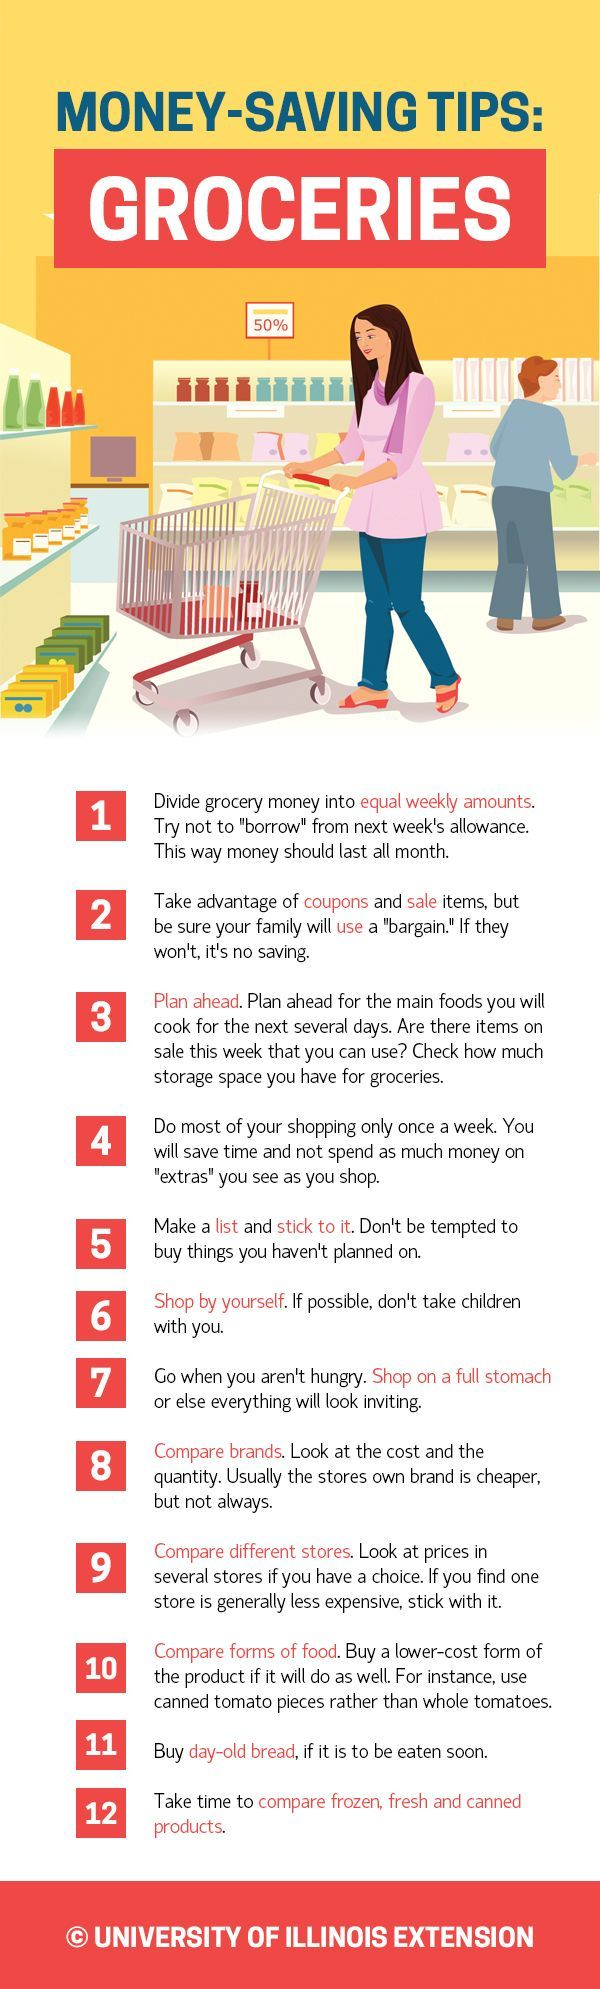 Make sure you use these tips when grocery shopping. | Pass One Hour Heating & Air Conditioning | (618) 997-6471 | www.passonehour.com